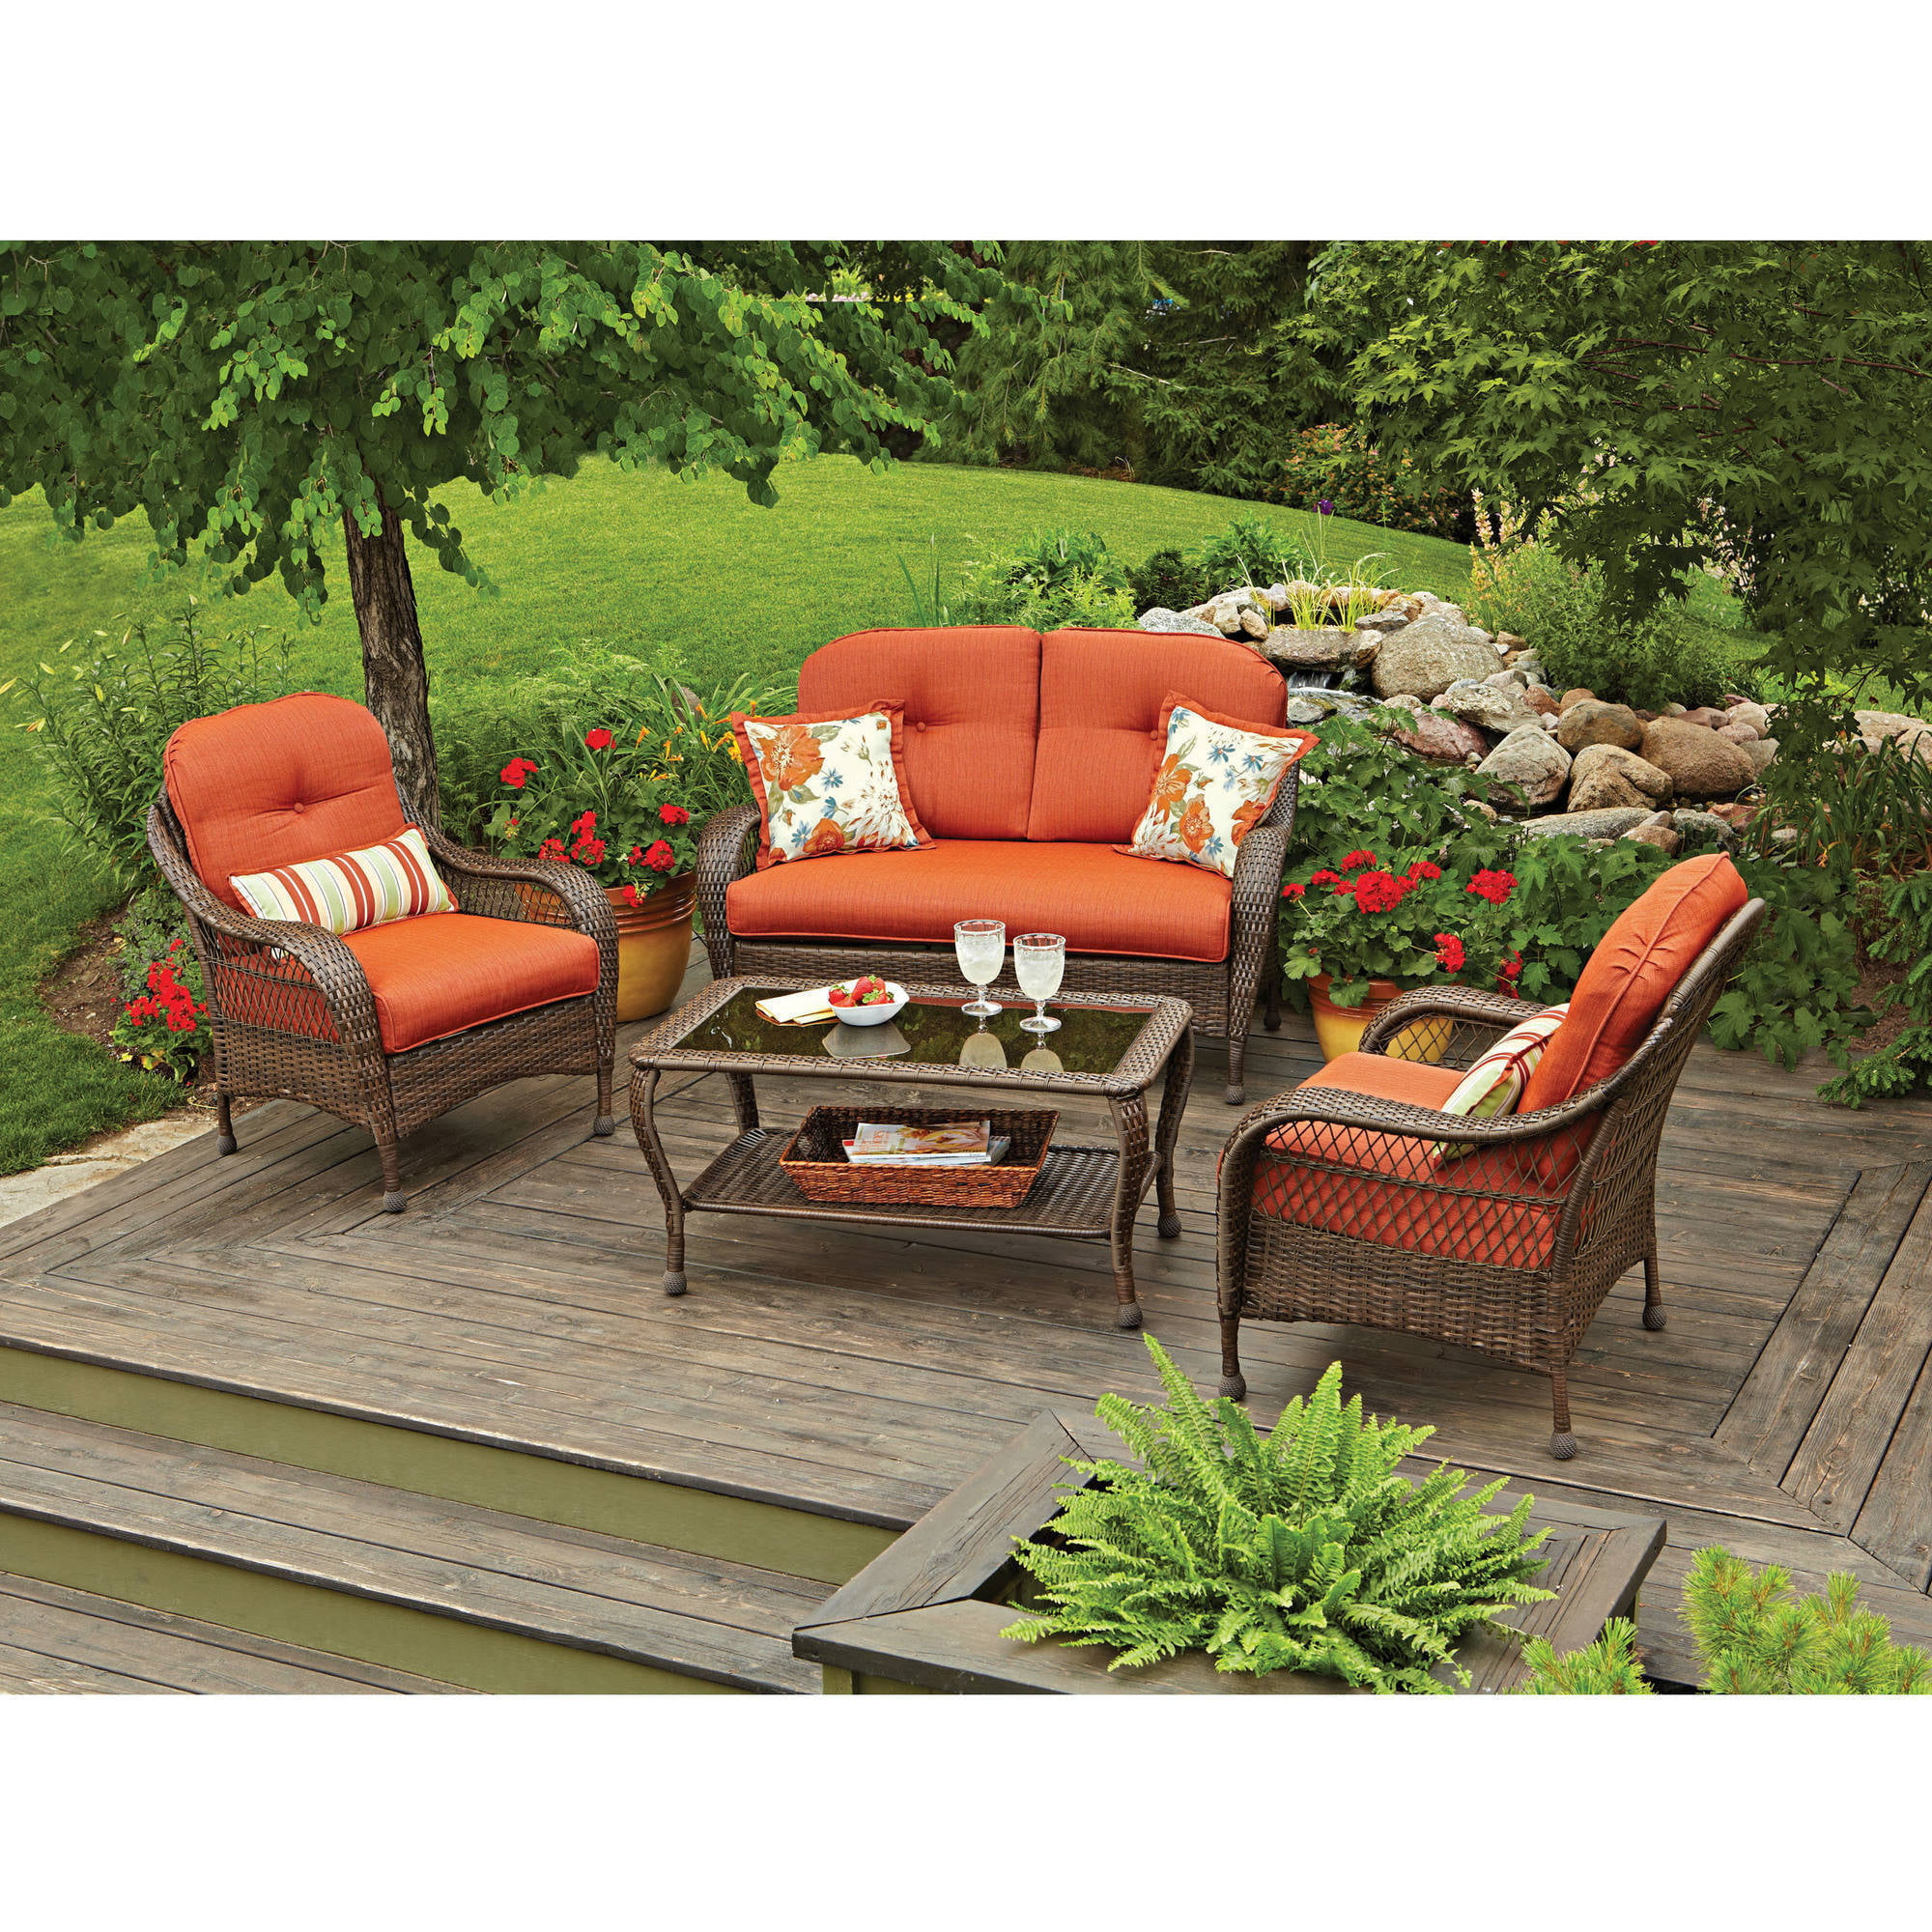 better homes and gardens carter hills outdoor cushioned loveseat seats 2 walmartcom - Garden Furniture Love Seat